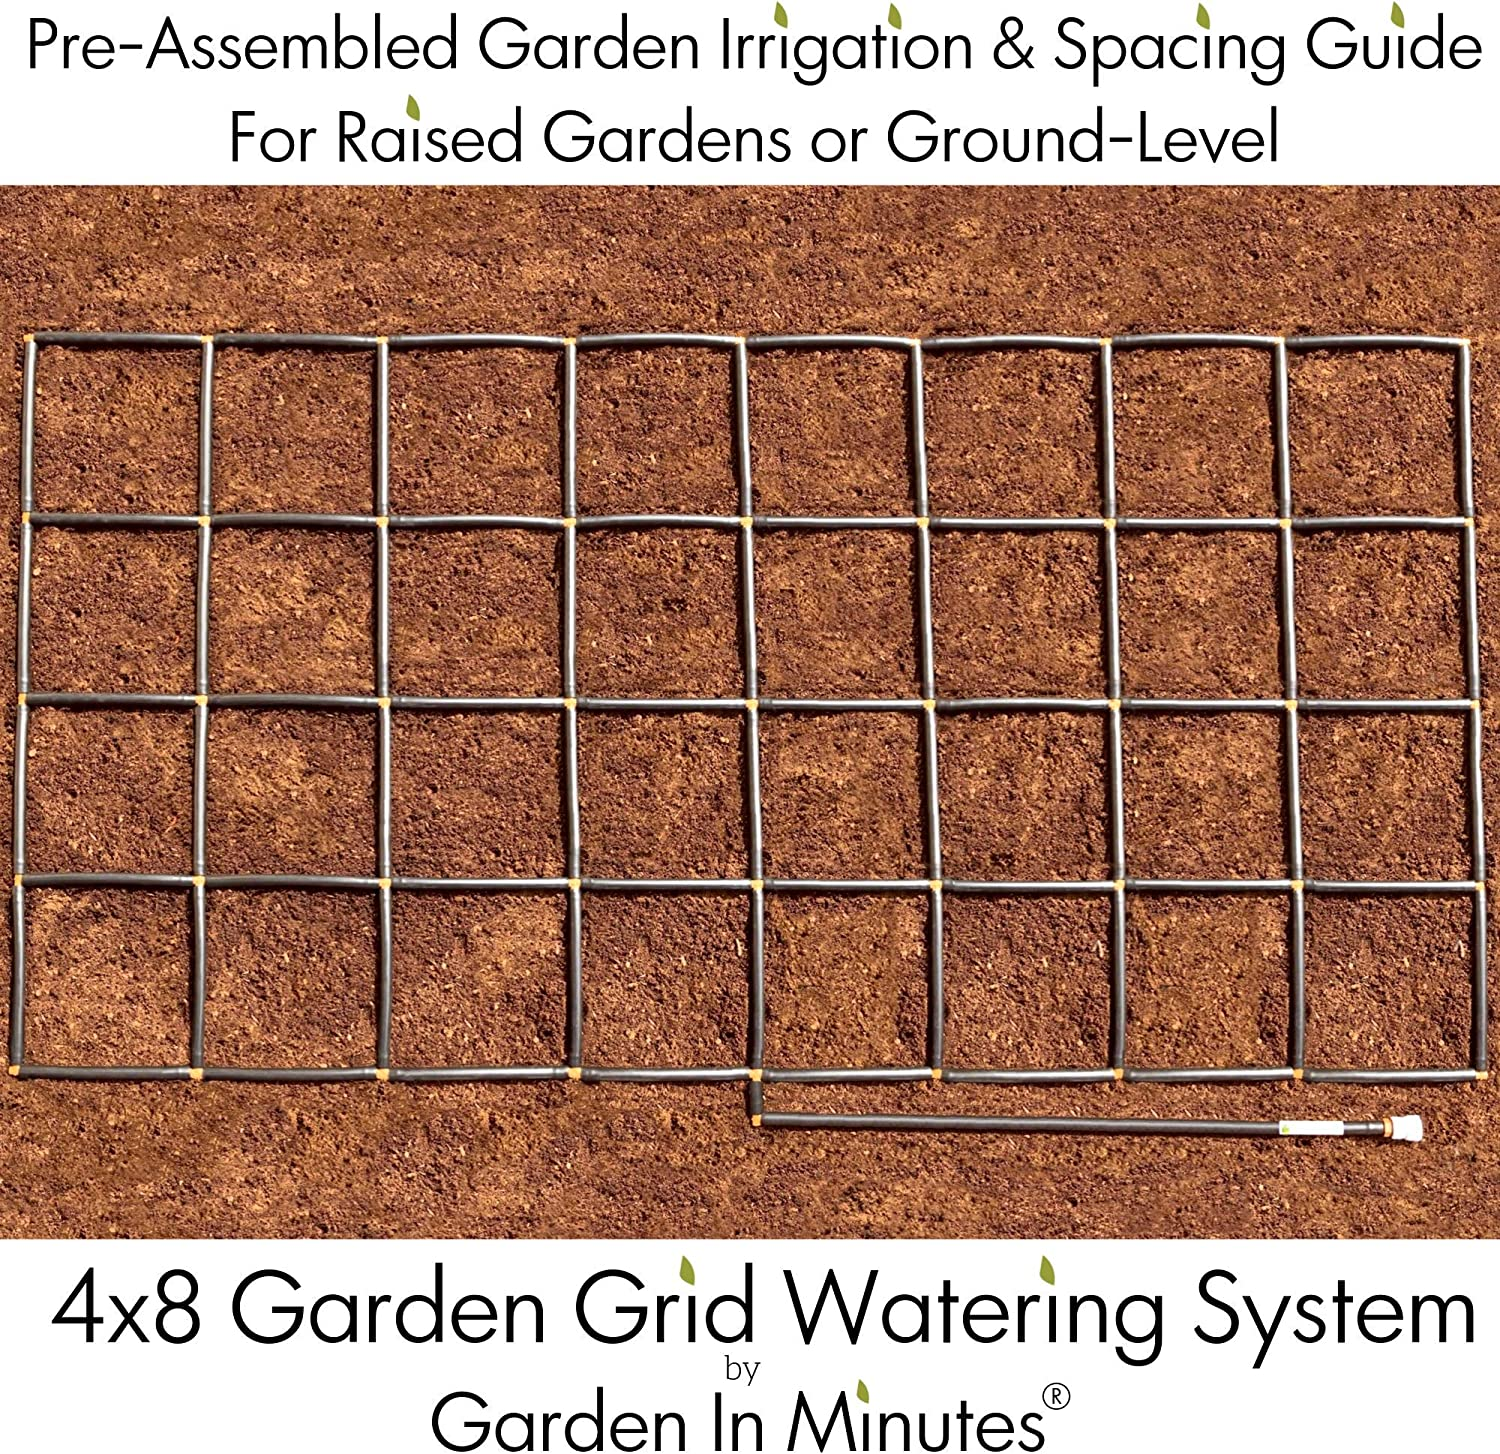 Garden In Minutes Garden Grid Watering System Preassembled Drip Irrigation, Soaker Hose Sprayer Style kit, in one Square Foot Gardening, Raised Beds, Planters or Ground Level – 4×8 44 x88